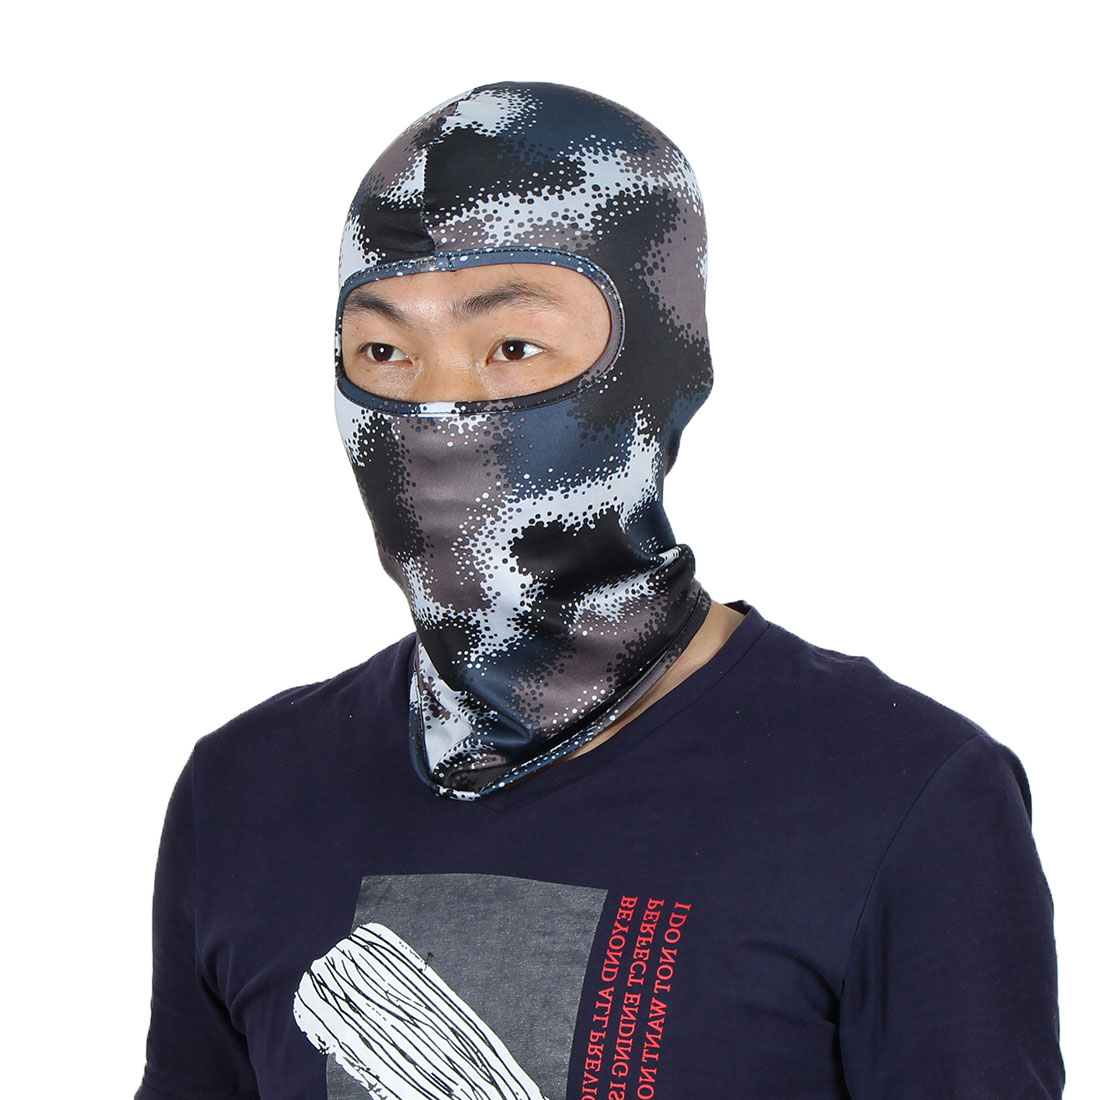 Full Coverage Face Mask Hunting Gel Padded Neck Protector Hood Helmet Balaclava by Unique-Bargains